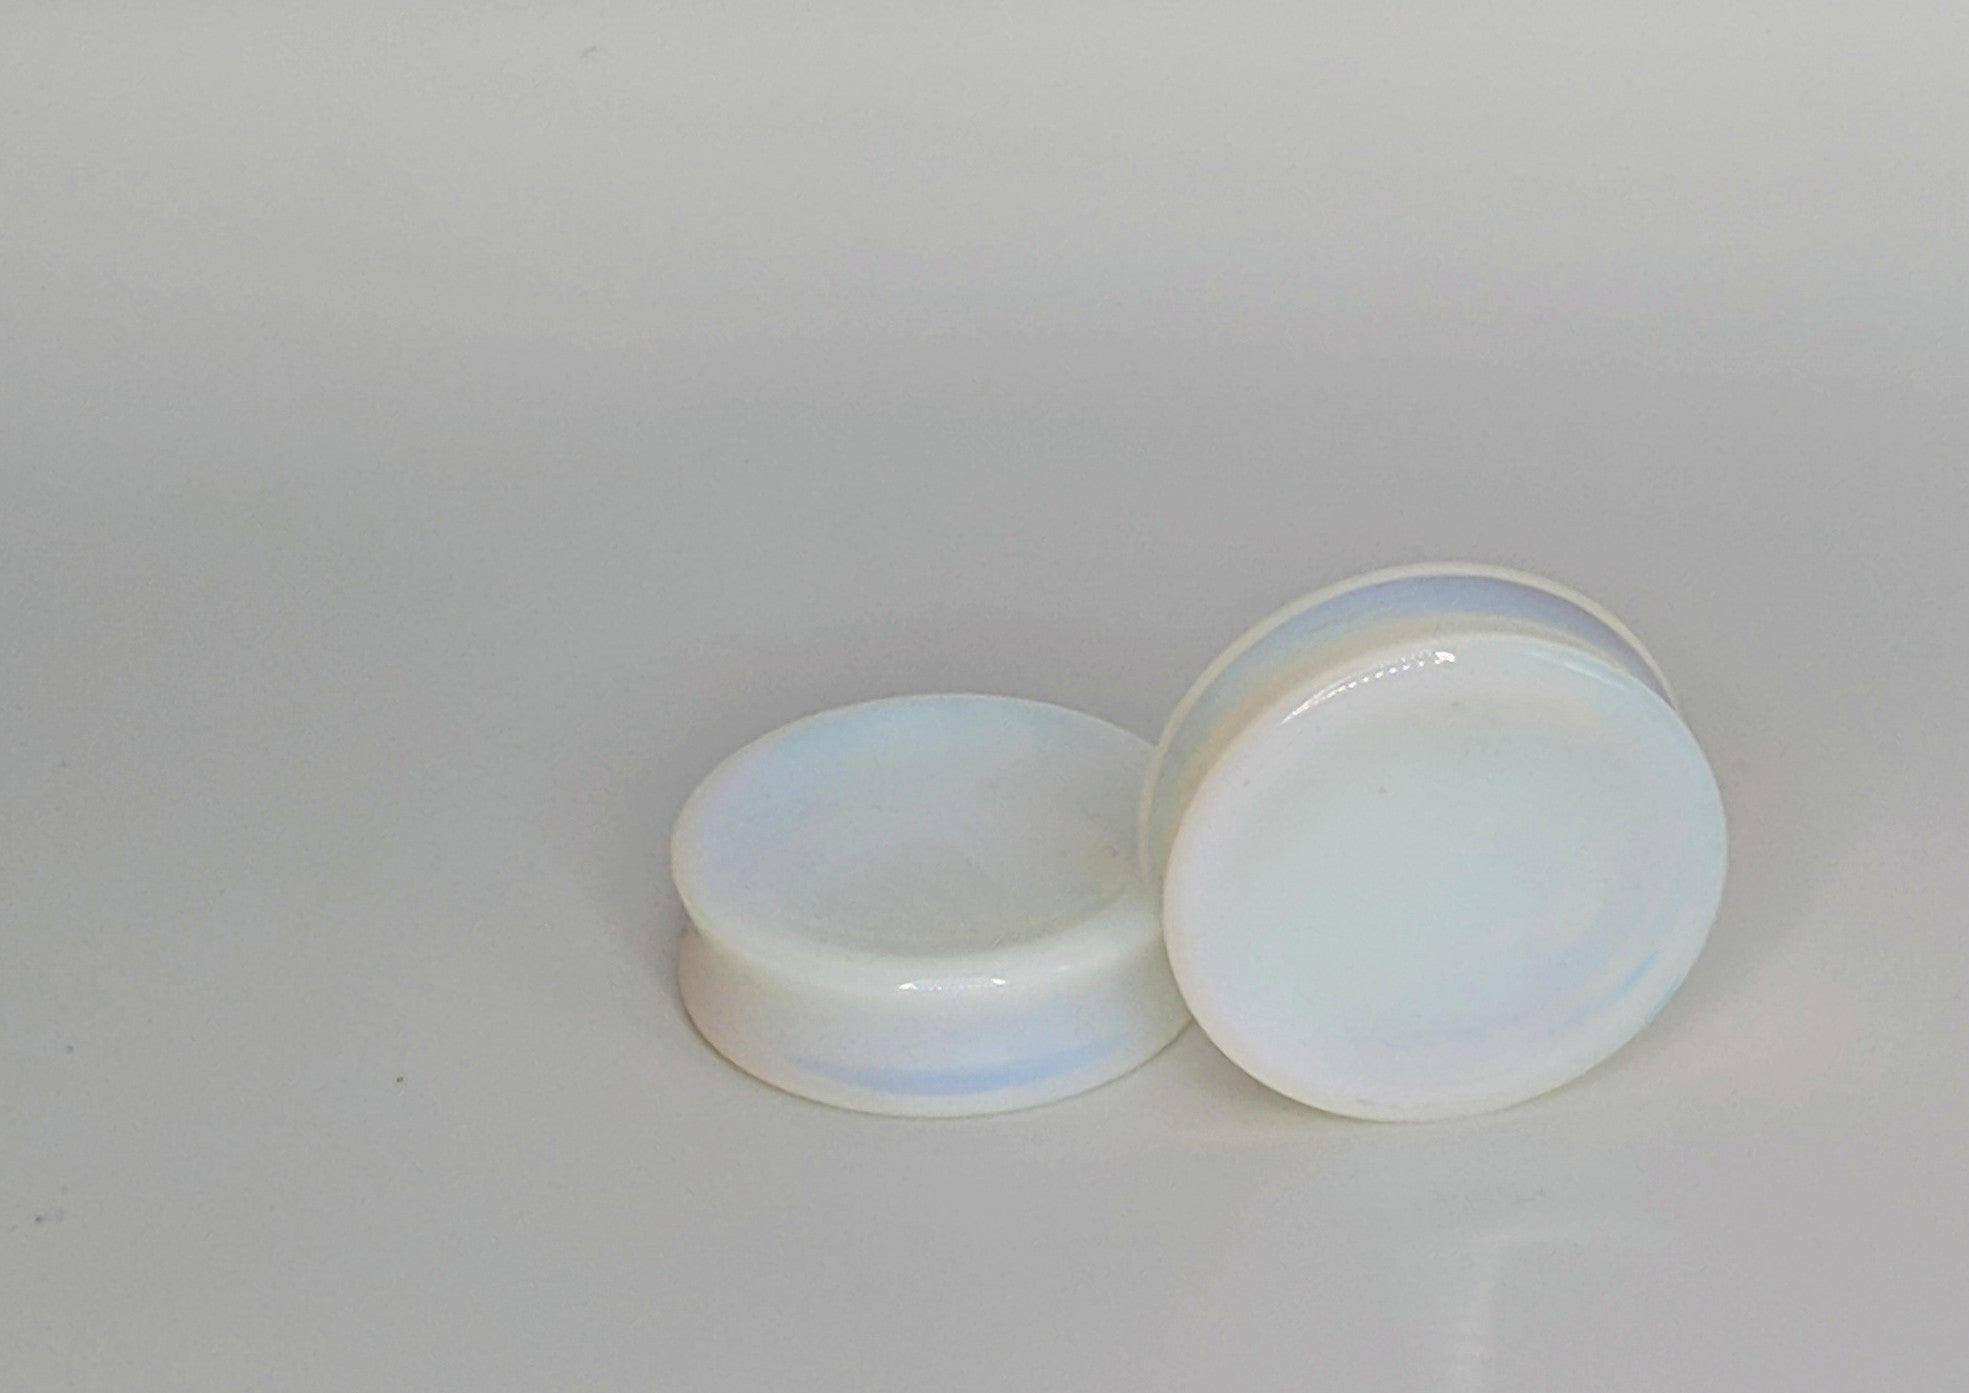 DF Concave Opalite Plugs